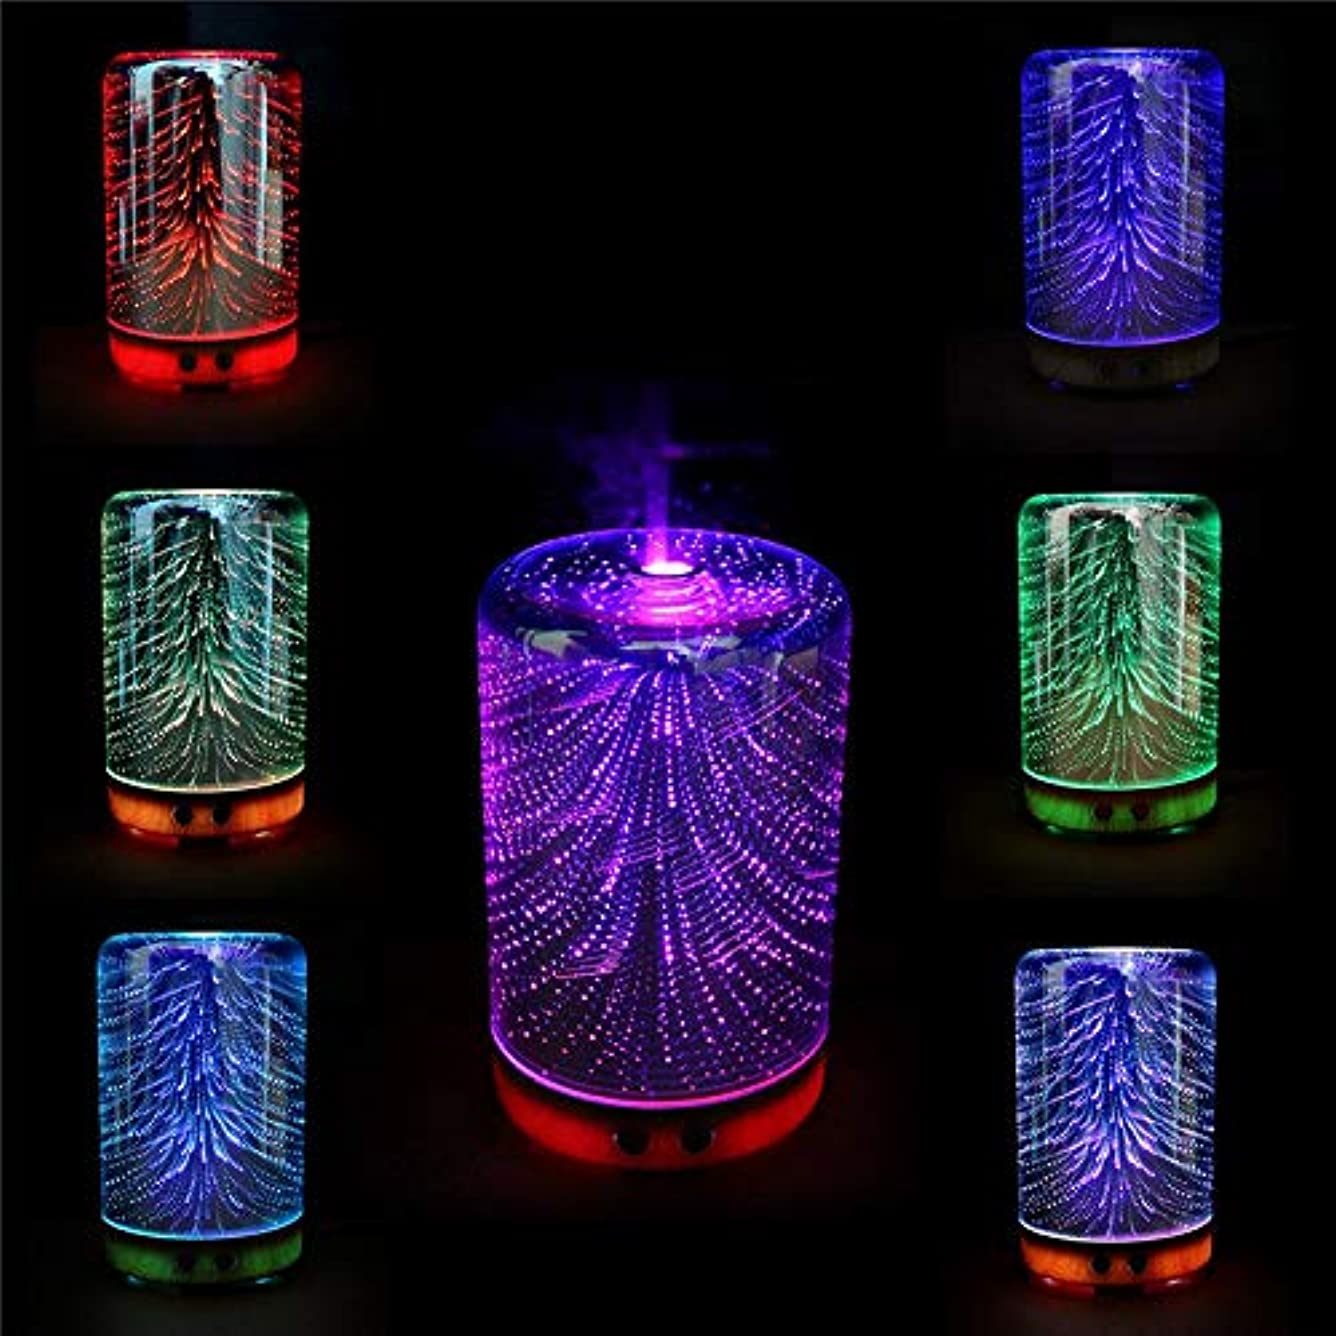 昇る適応するこしょうFishagelo Color Changing 3D Lighting Essential Oil Aroma Diffuser Ultrasonic Mist Humidifier Aromatherapy 141[...